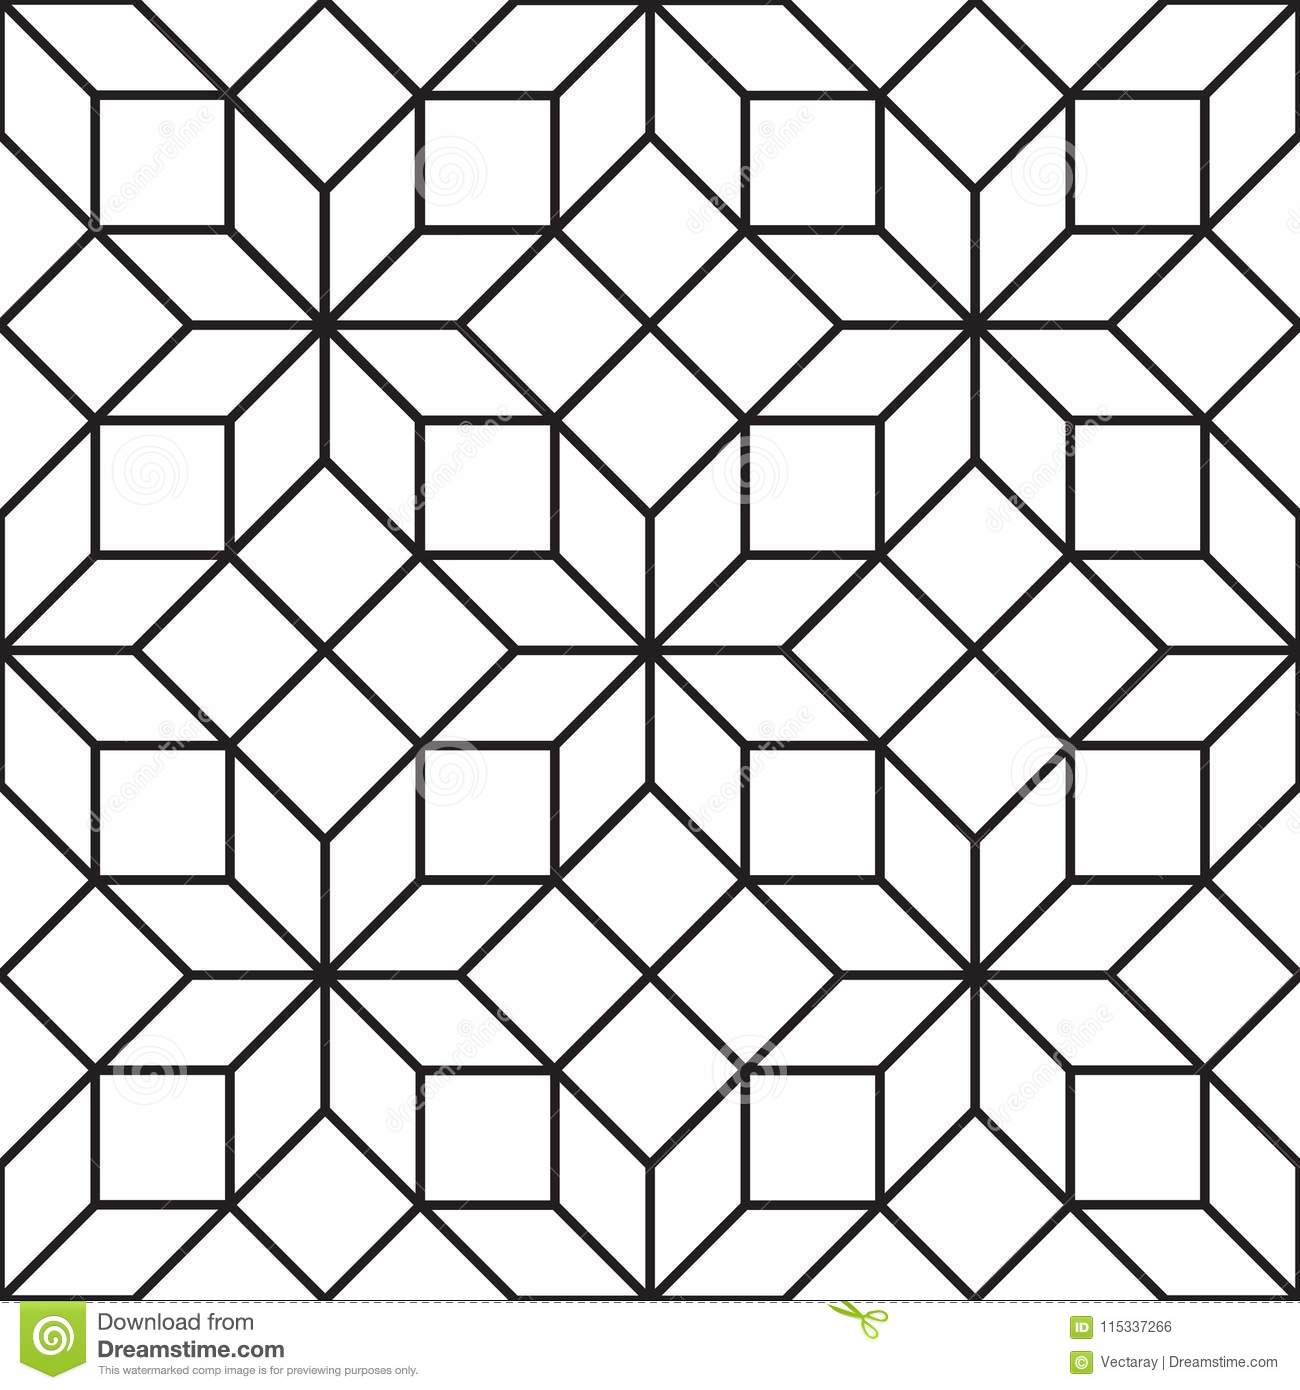 Seamless Vintage Geometric Lattice Trellis Pattern